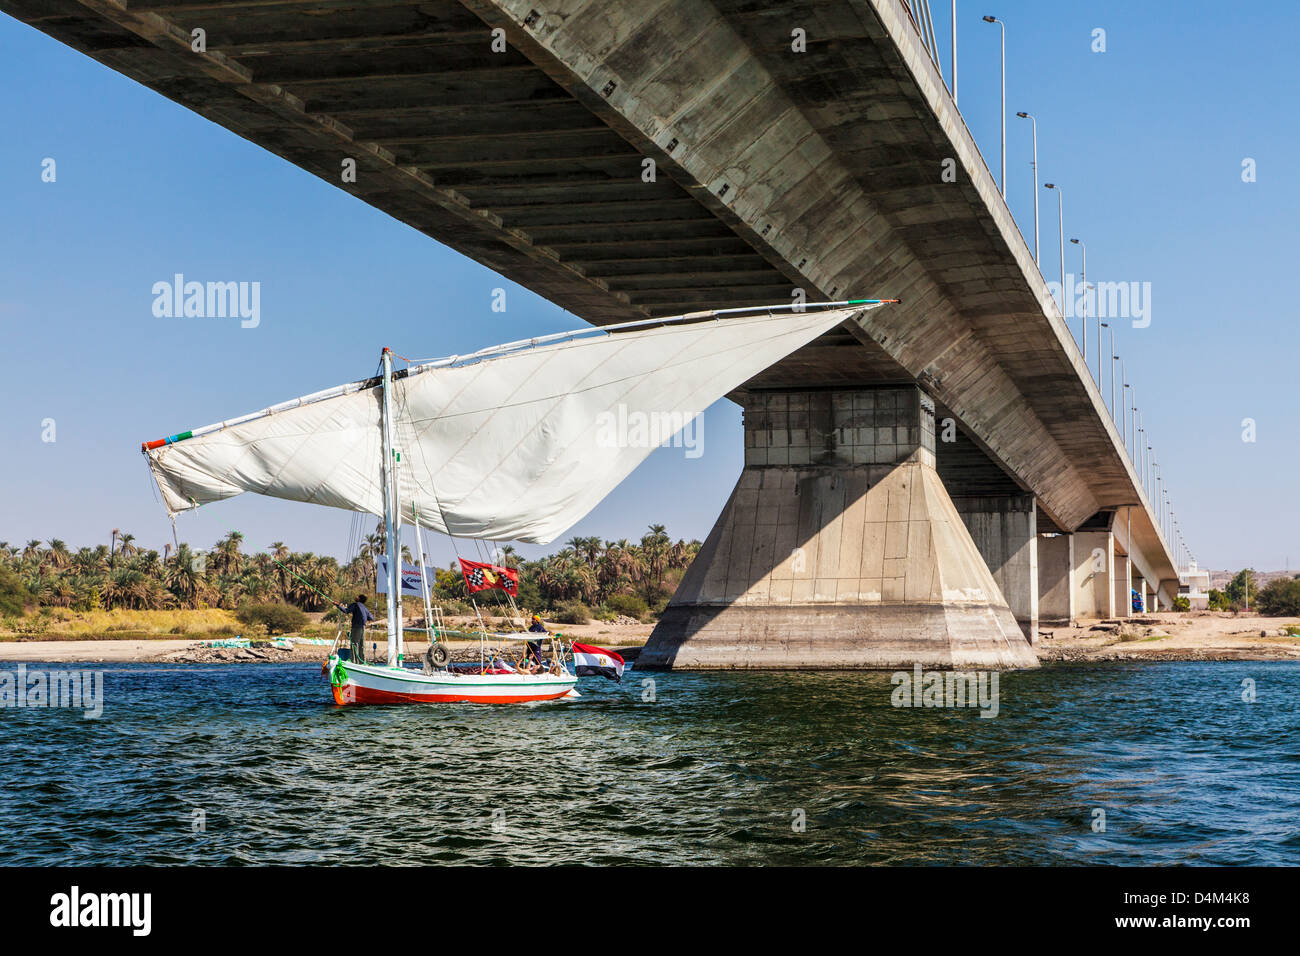 Tourist felucca swivels its main sail to pass under the bridge at Aswan on the Nile, Egypt - Stock Image